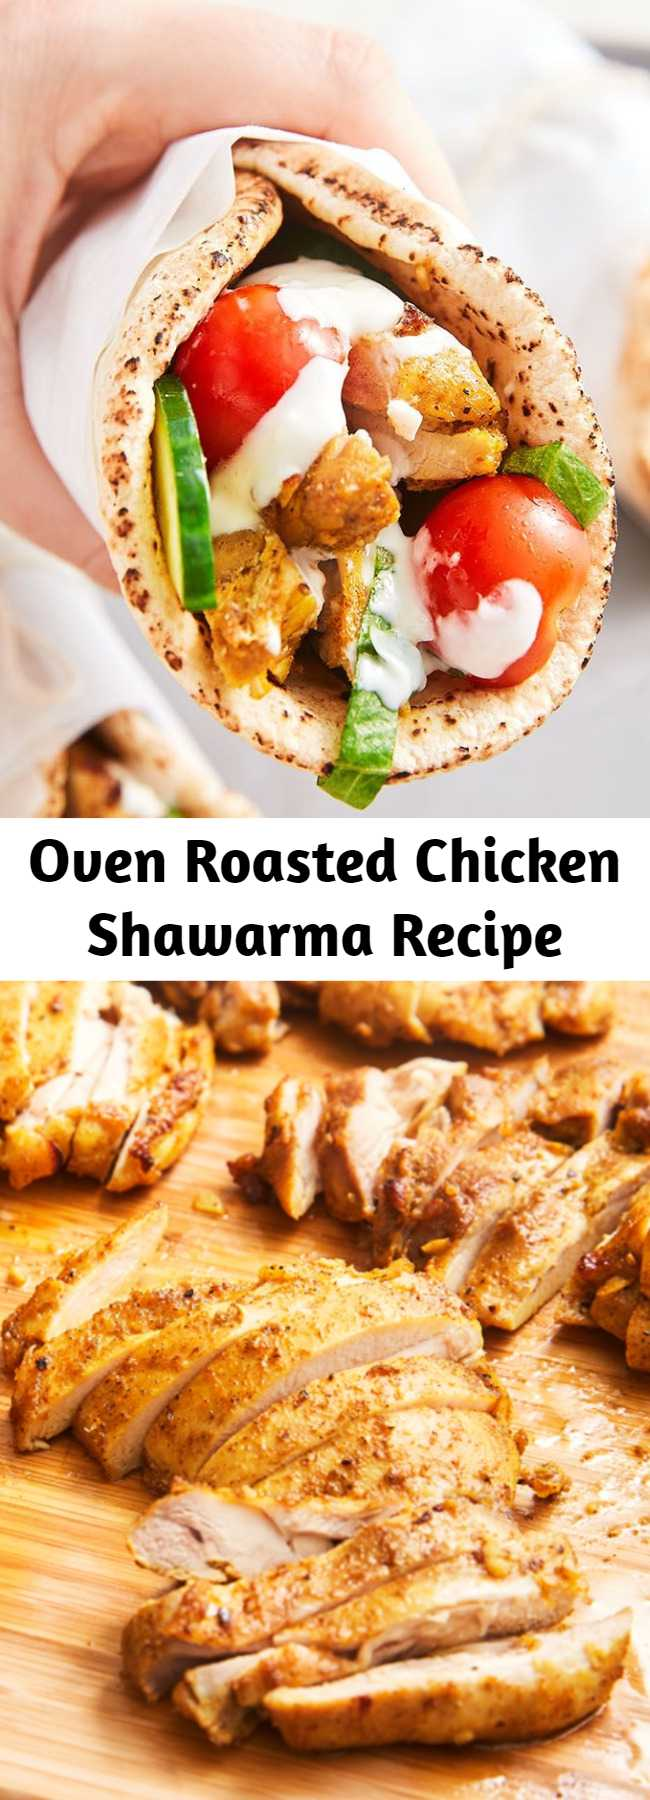 Oven Roasted Chicken Shawarma Recipe - Shawarma refers to the Middle Eastern method cooking where thin slices of meat, most traditionally lamb, are stack on a vertical spit and slowly rotate in front of a fire or other heat source. The outside meat is slowly cooked and then shaved off to serve. It's a common street food and the result is tender, juicy, well spiced meat.